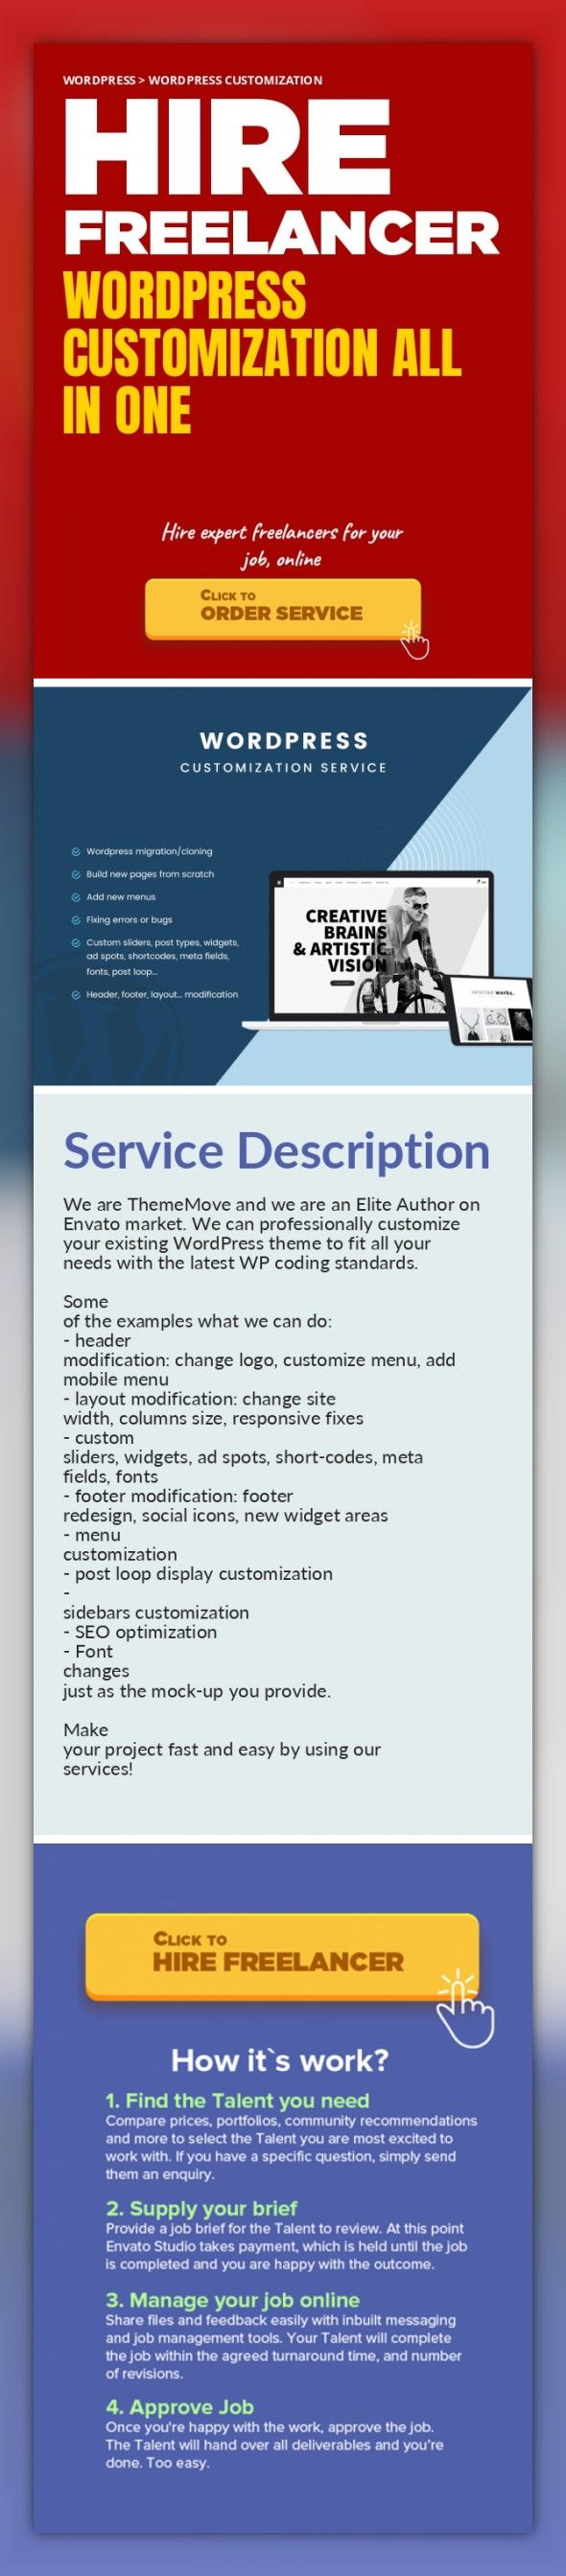 Best 25 coding standards ideas on pinterest all girls boarding wordpress customization all in one wordpress wordpress customization we are thememove and we are an elite author on envato market fandeluxe Images